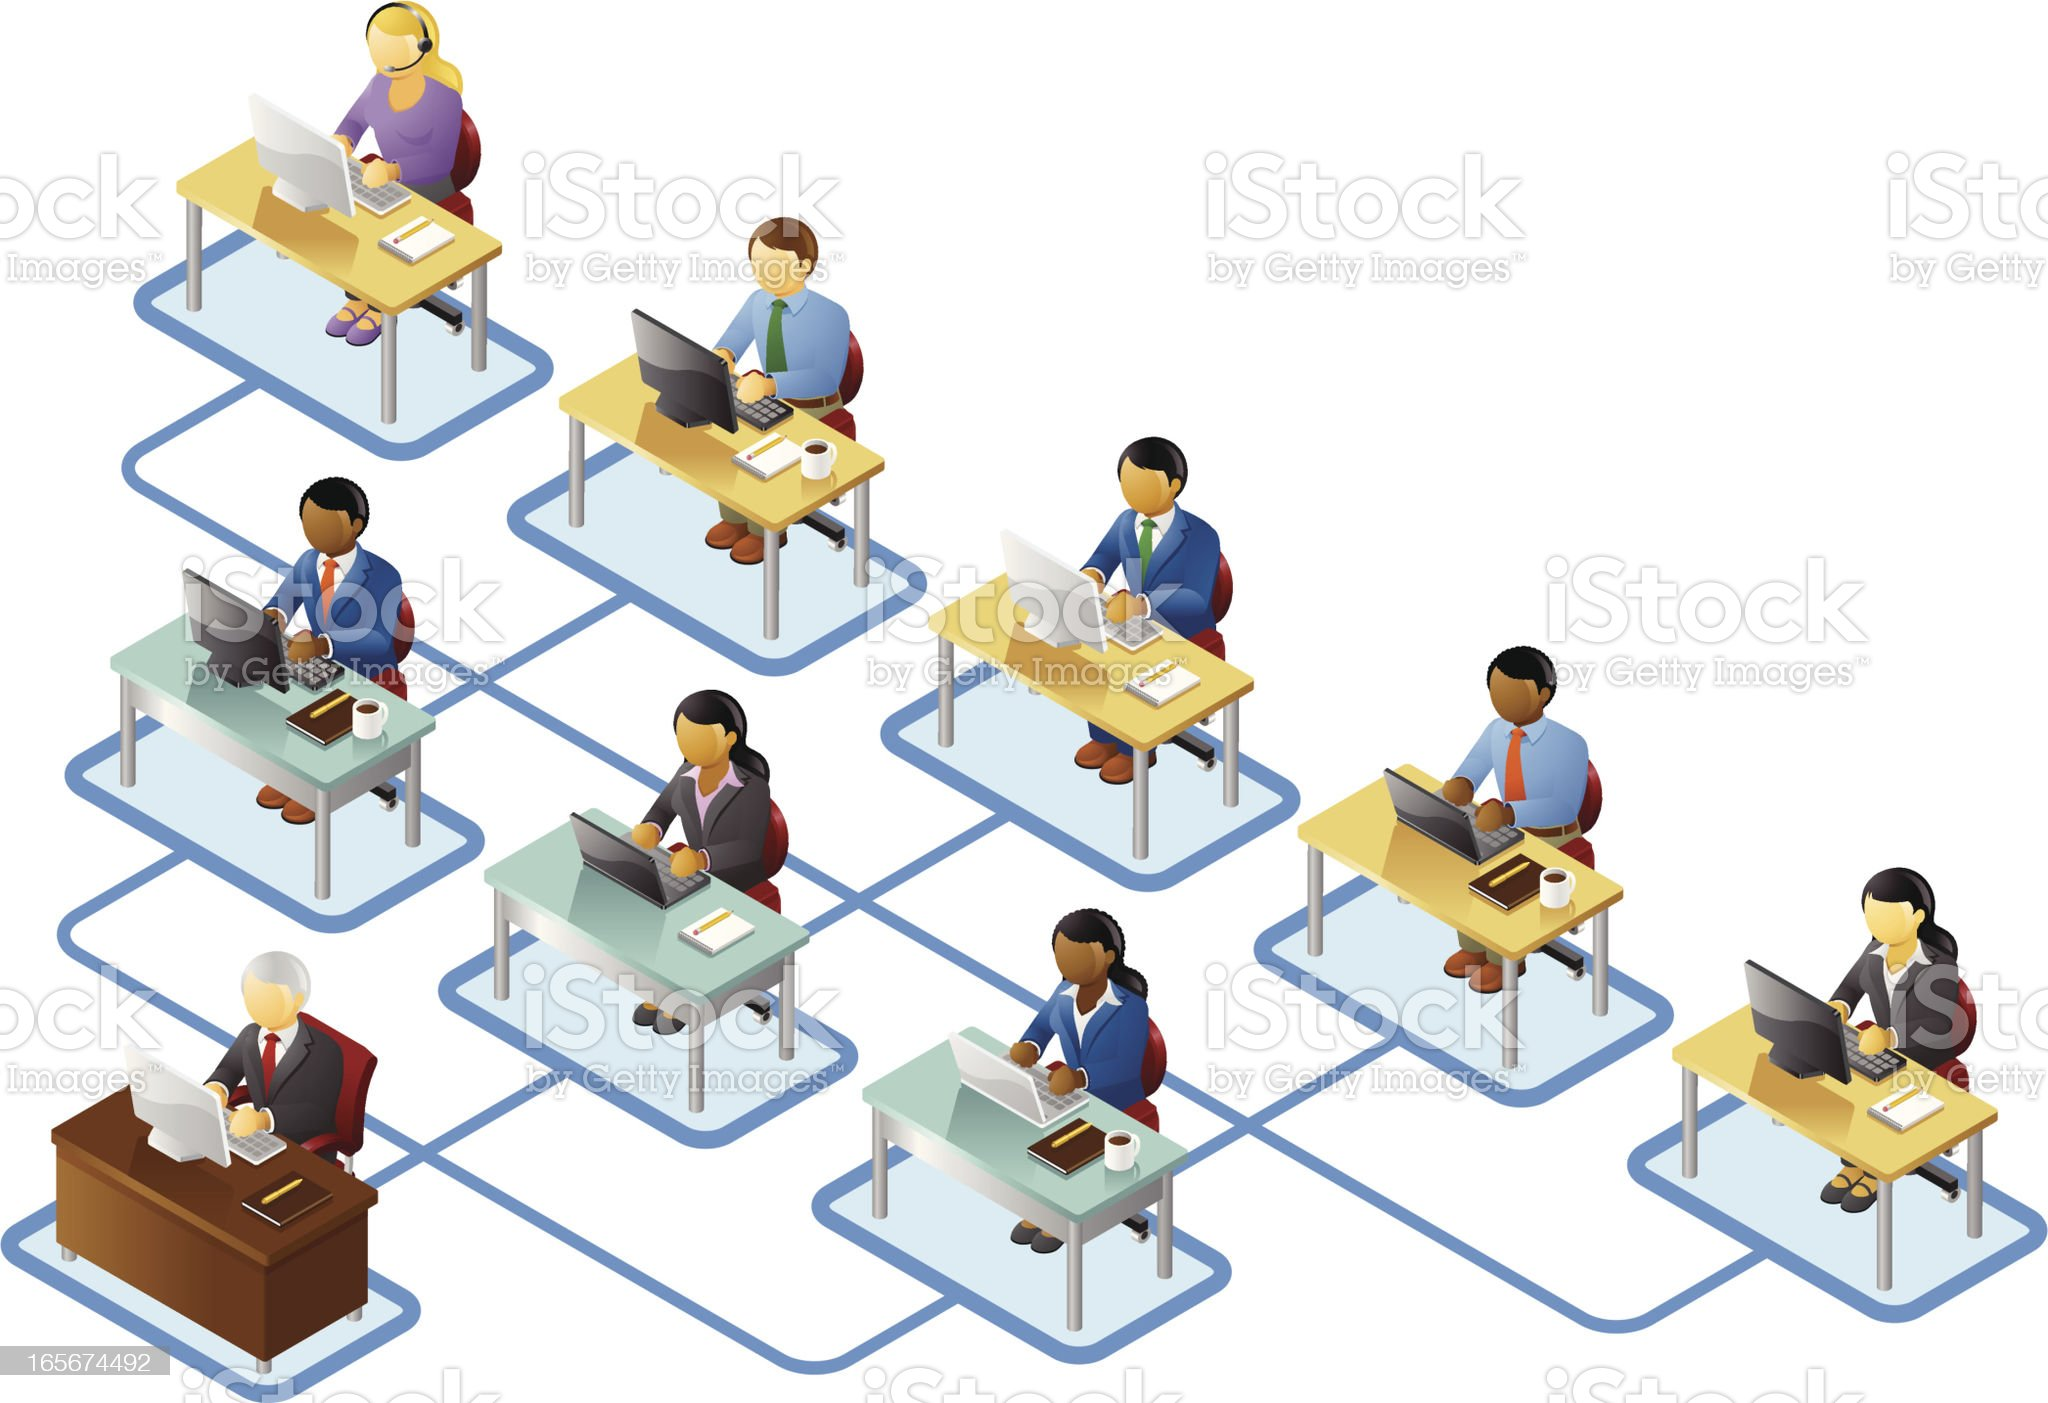 Business People Organizational Chart royalty-free stock vector art